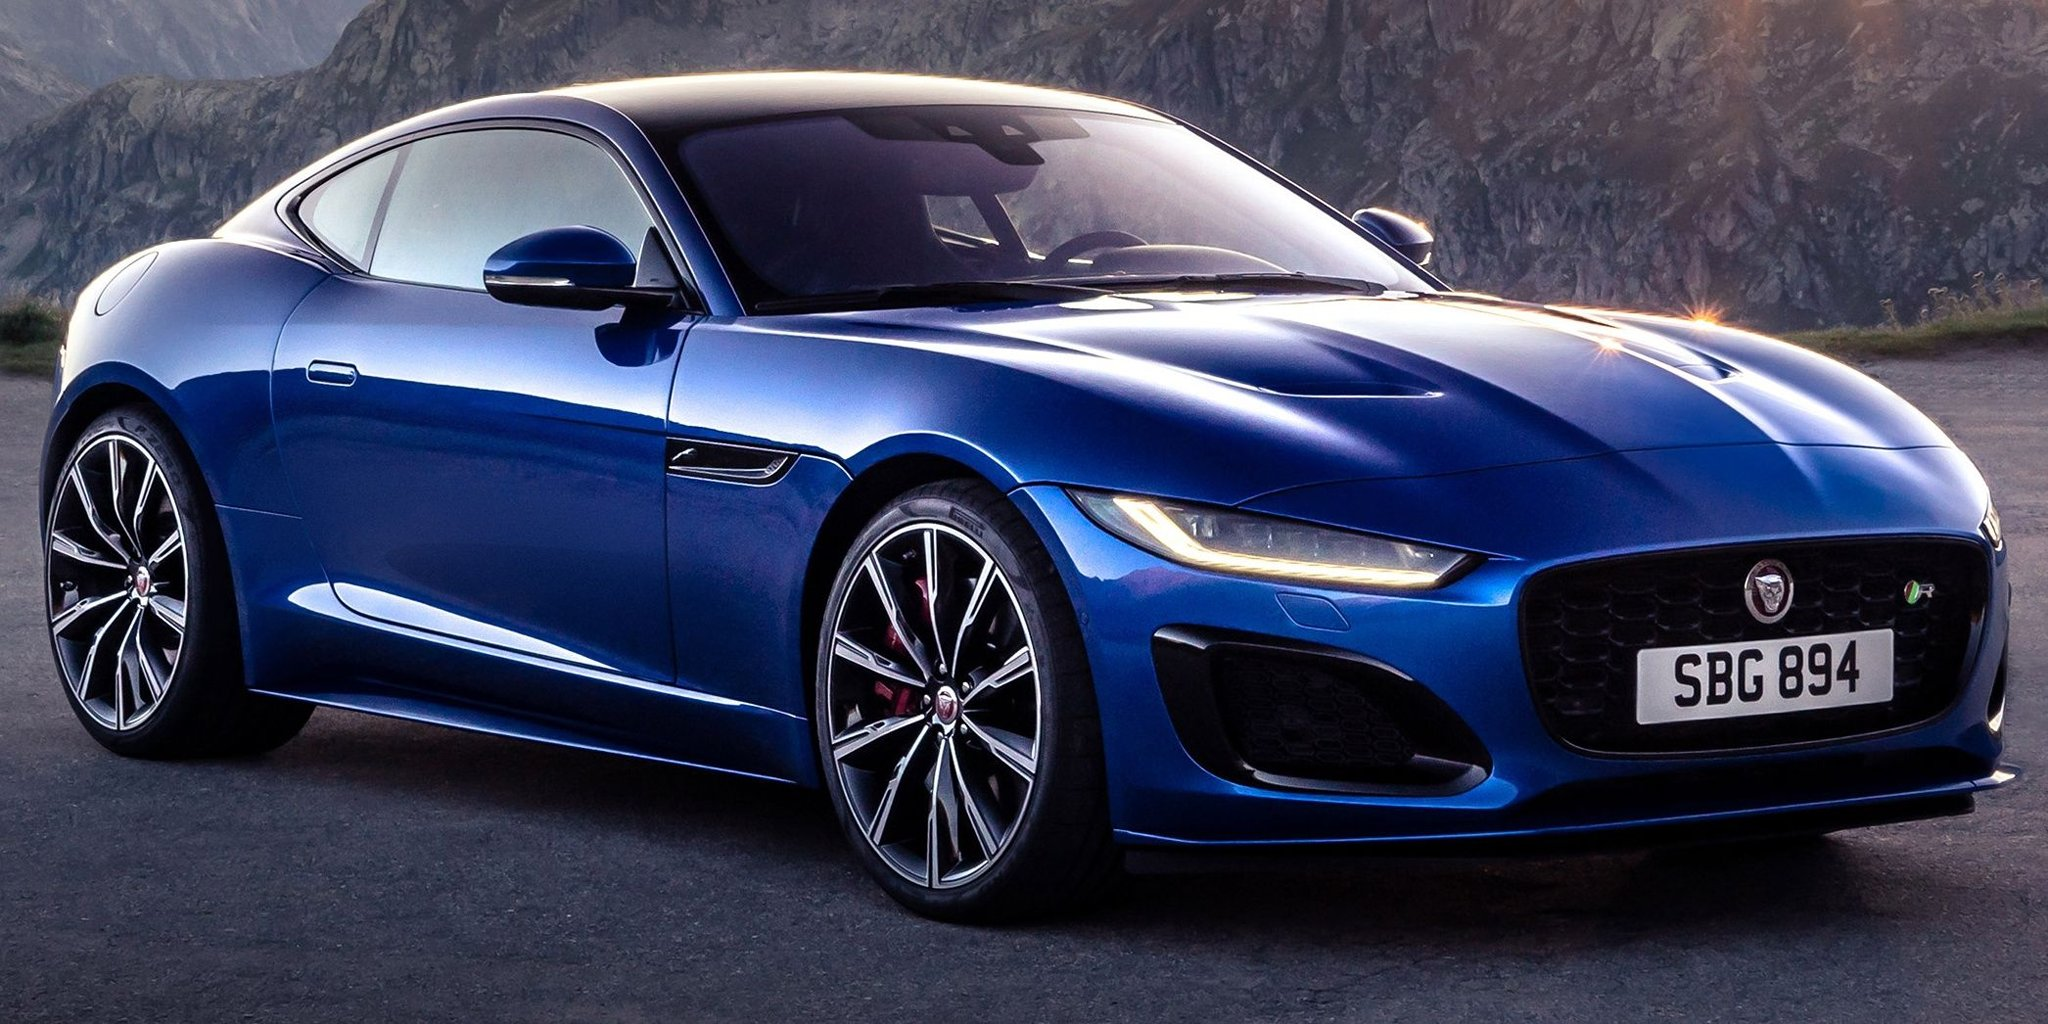 5 Most Overrated European Sports Cars On The Market (5 We'd Rather Buy)